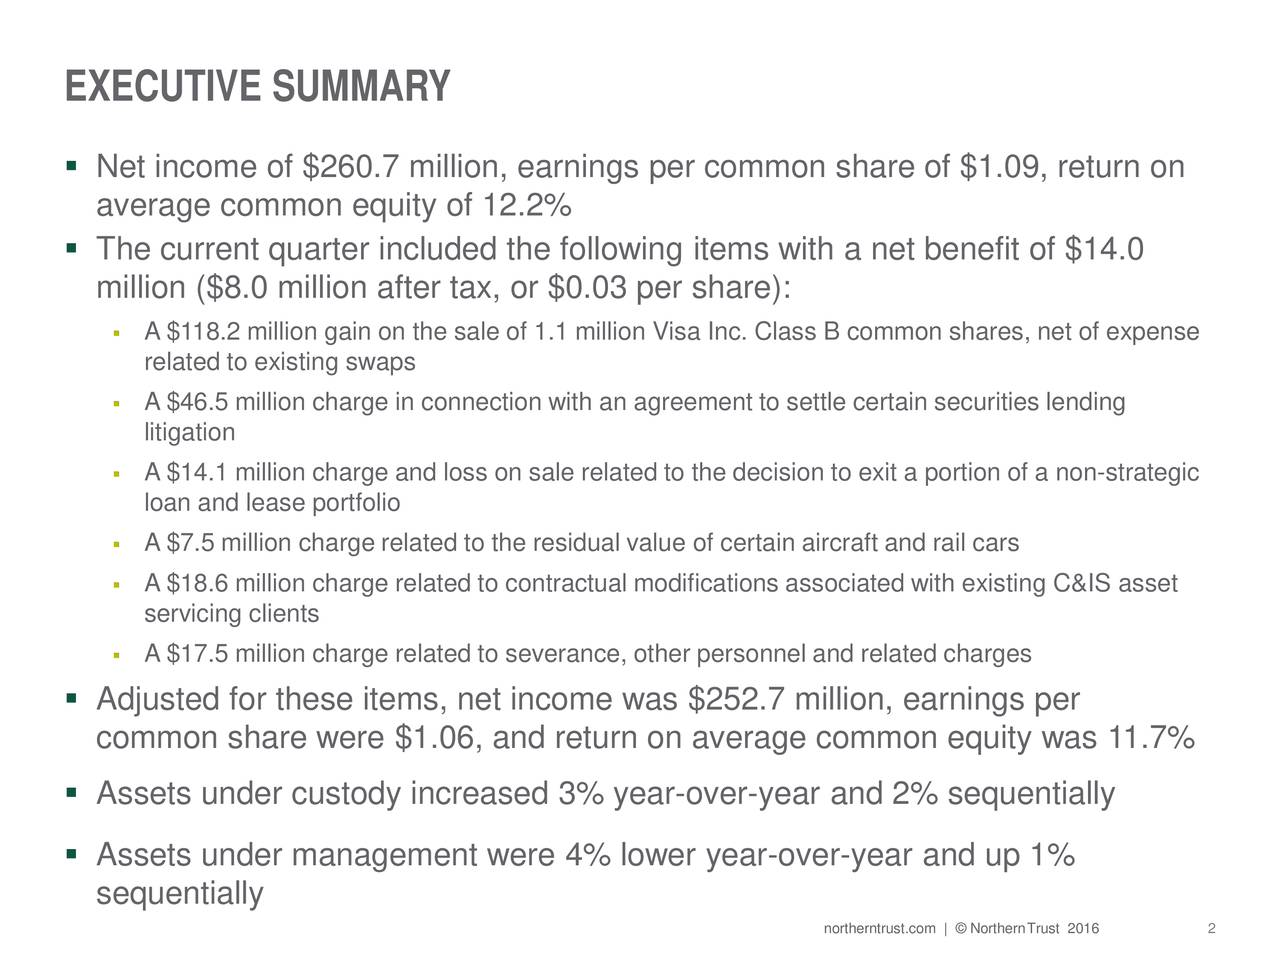 Net income of $260.7 million, earnings per common share of $1.09, return on average common equity of 12.2% The current quarter included the following items with a net benefit of $14.0 million ($8.0 million after tax, or $0.03 per share): A $118.2 million gain on the sale of 1.1 million Visa Inc. Class B common shares, net of expense related to existing swaps A $46.5 million charge in connection with an agreement to settle certain securities lending litigation A $14.1 million charge and loss on sale related to the decision to exit a portion of a non-strategic loan and lease portfolio A $7.5 million charge related to the residual value of certain aircraft and rail cars A $18.6 million charge related to contractual modifications associated with existing C&IS asset servicing clients A $17.5 million charge related to severance, other personnel and related charges Adjusted for these items, net income was $252.7 million, earnings per common share were $1.06, and return on average common equity was 11.7% Assets under custody increased 3% year-over-year and 2% sequentially Assets under management were 4% lower year-over-year and up 1% sequentially northerntrust.com |  NorthernTrust22016